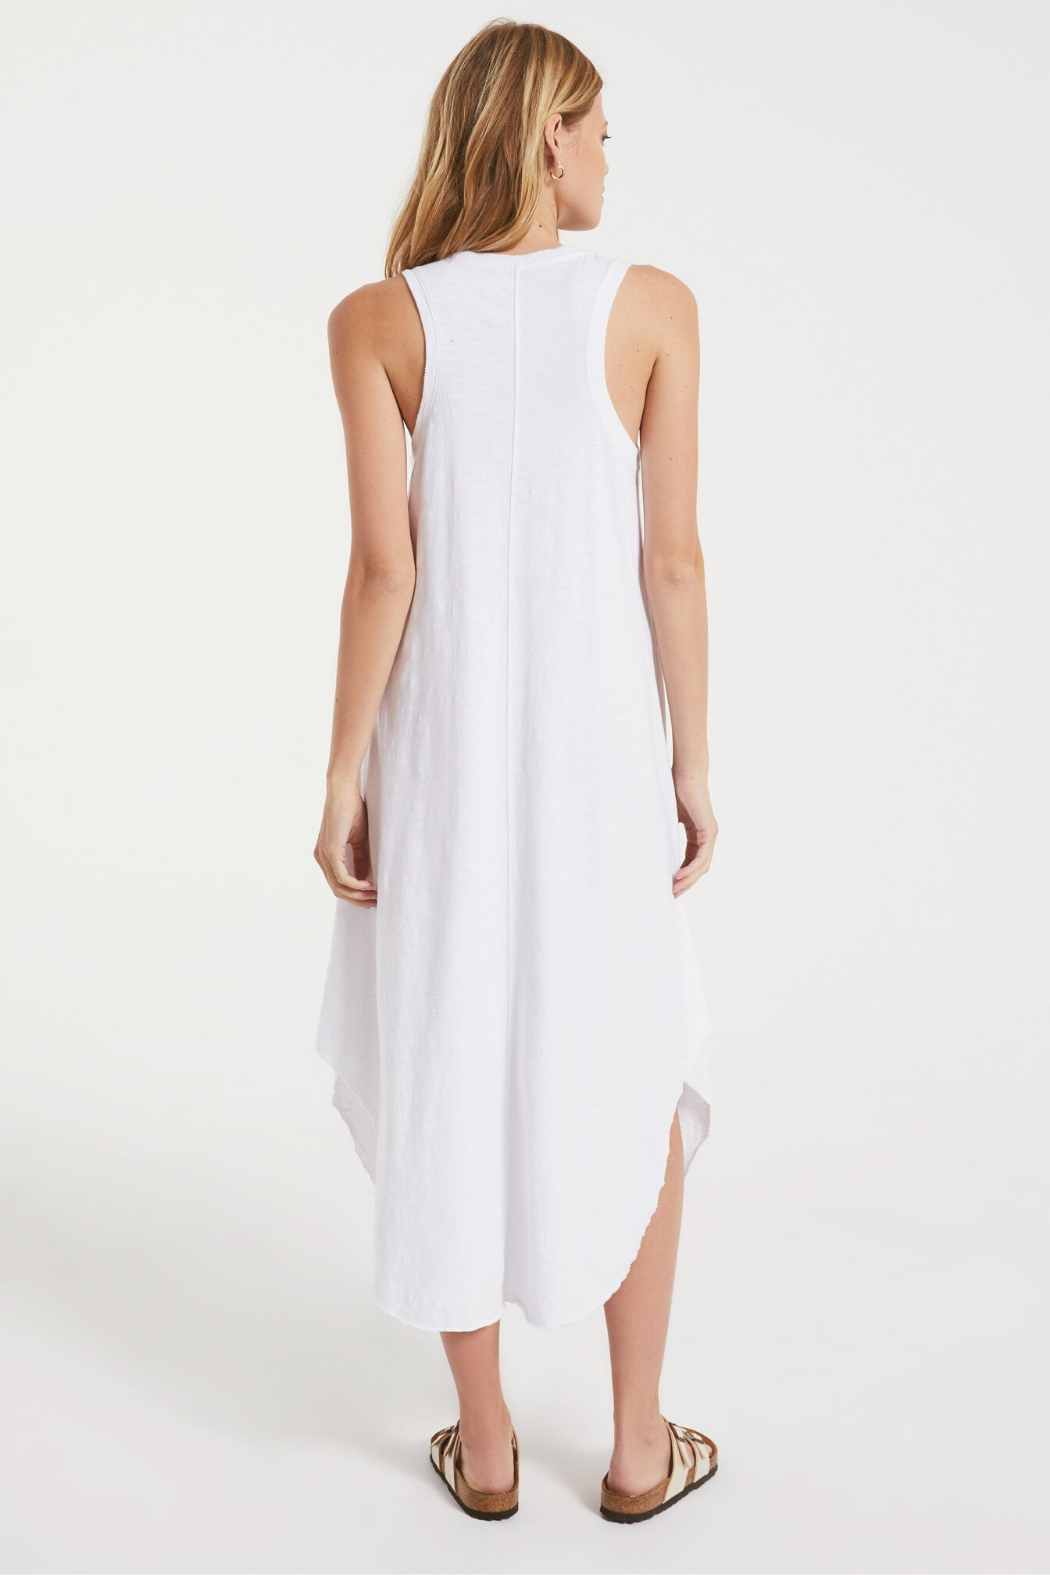 z supply Reverie Midi Dress - Side Cropped Image